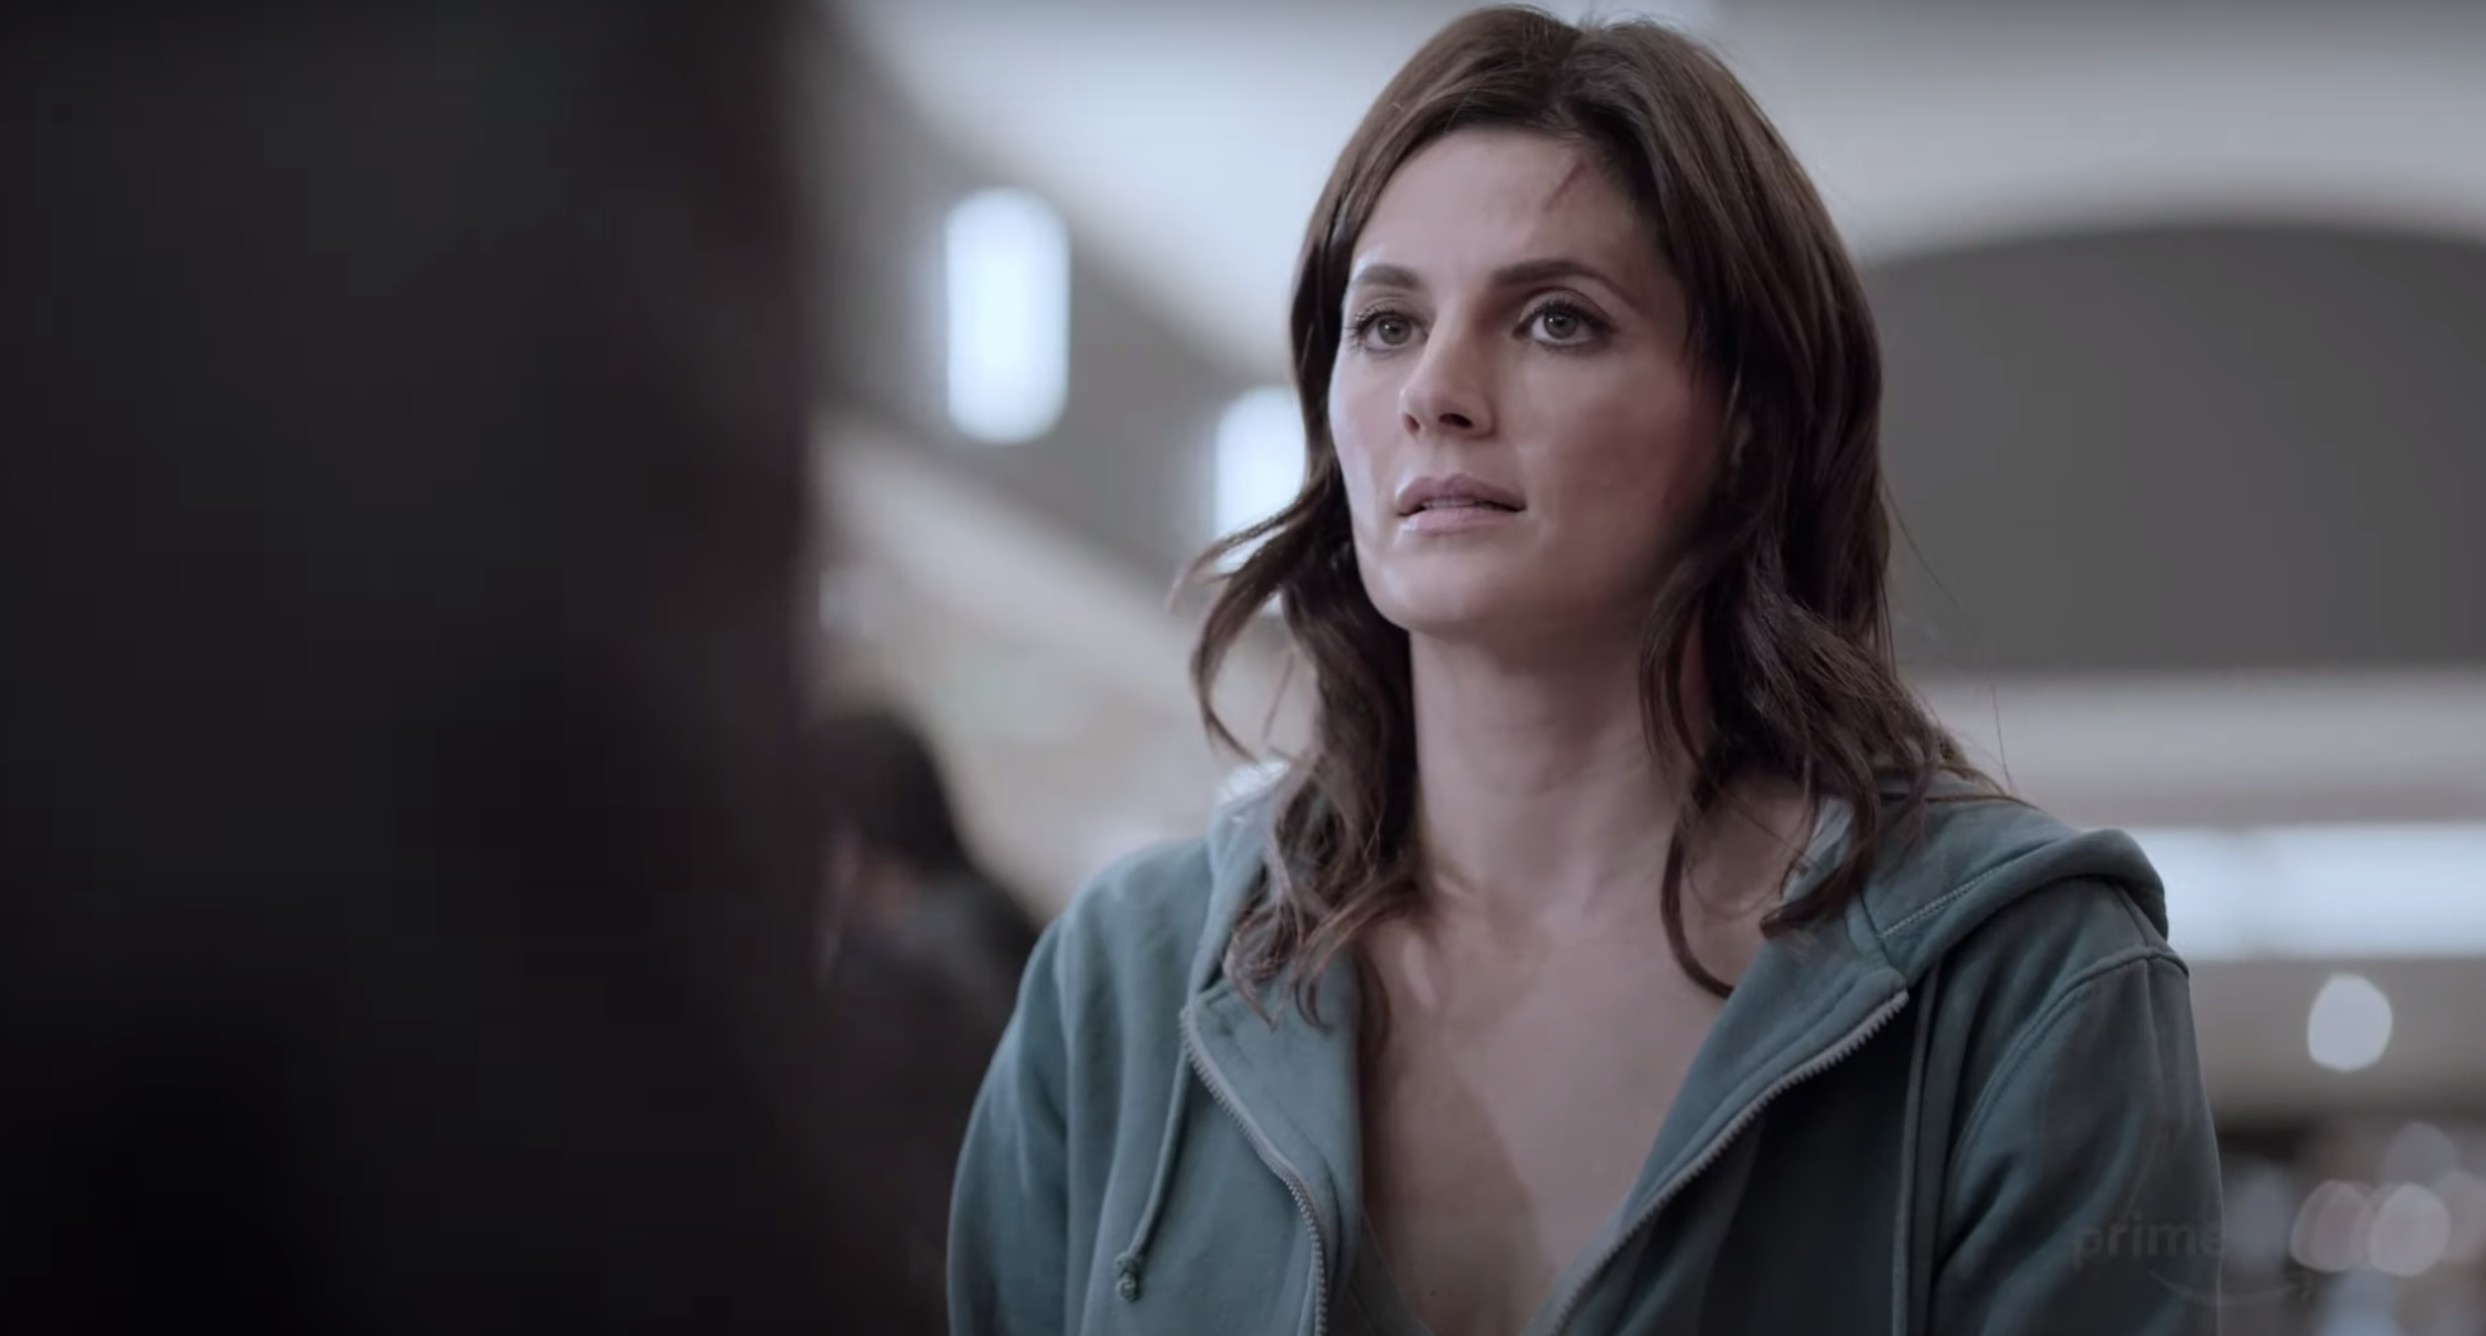 Stana Katic as Emily Byrne in Absentia (2020)